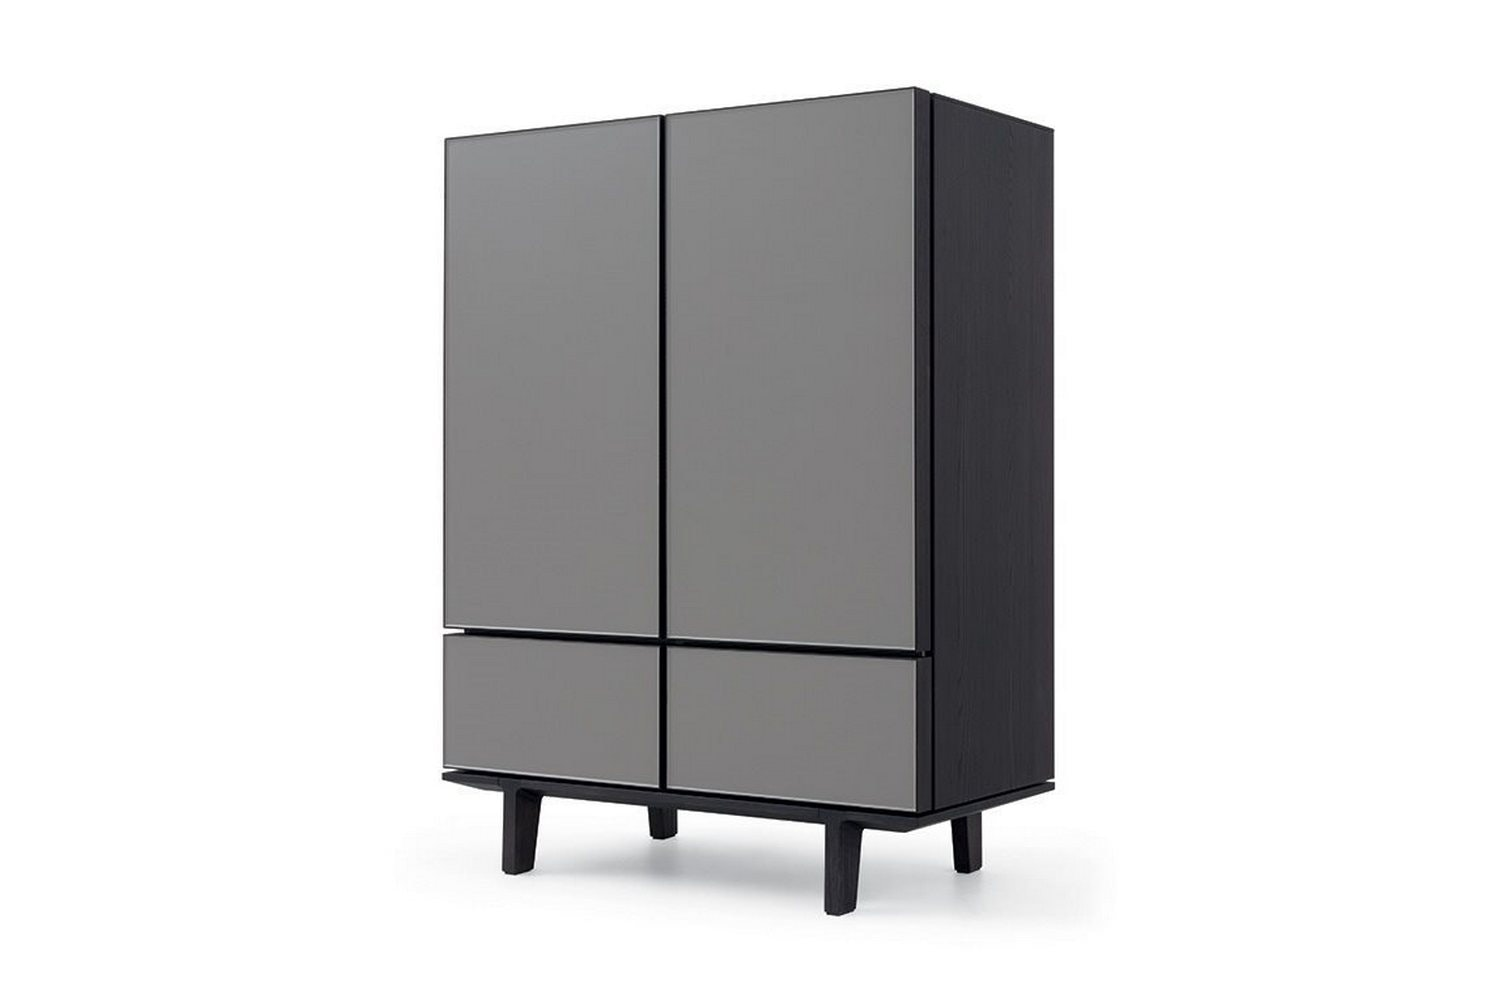 Pandora Due High Sideboard by J. M. Massaud for Poliform